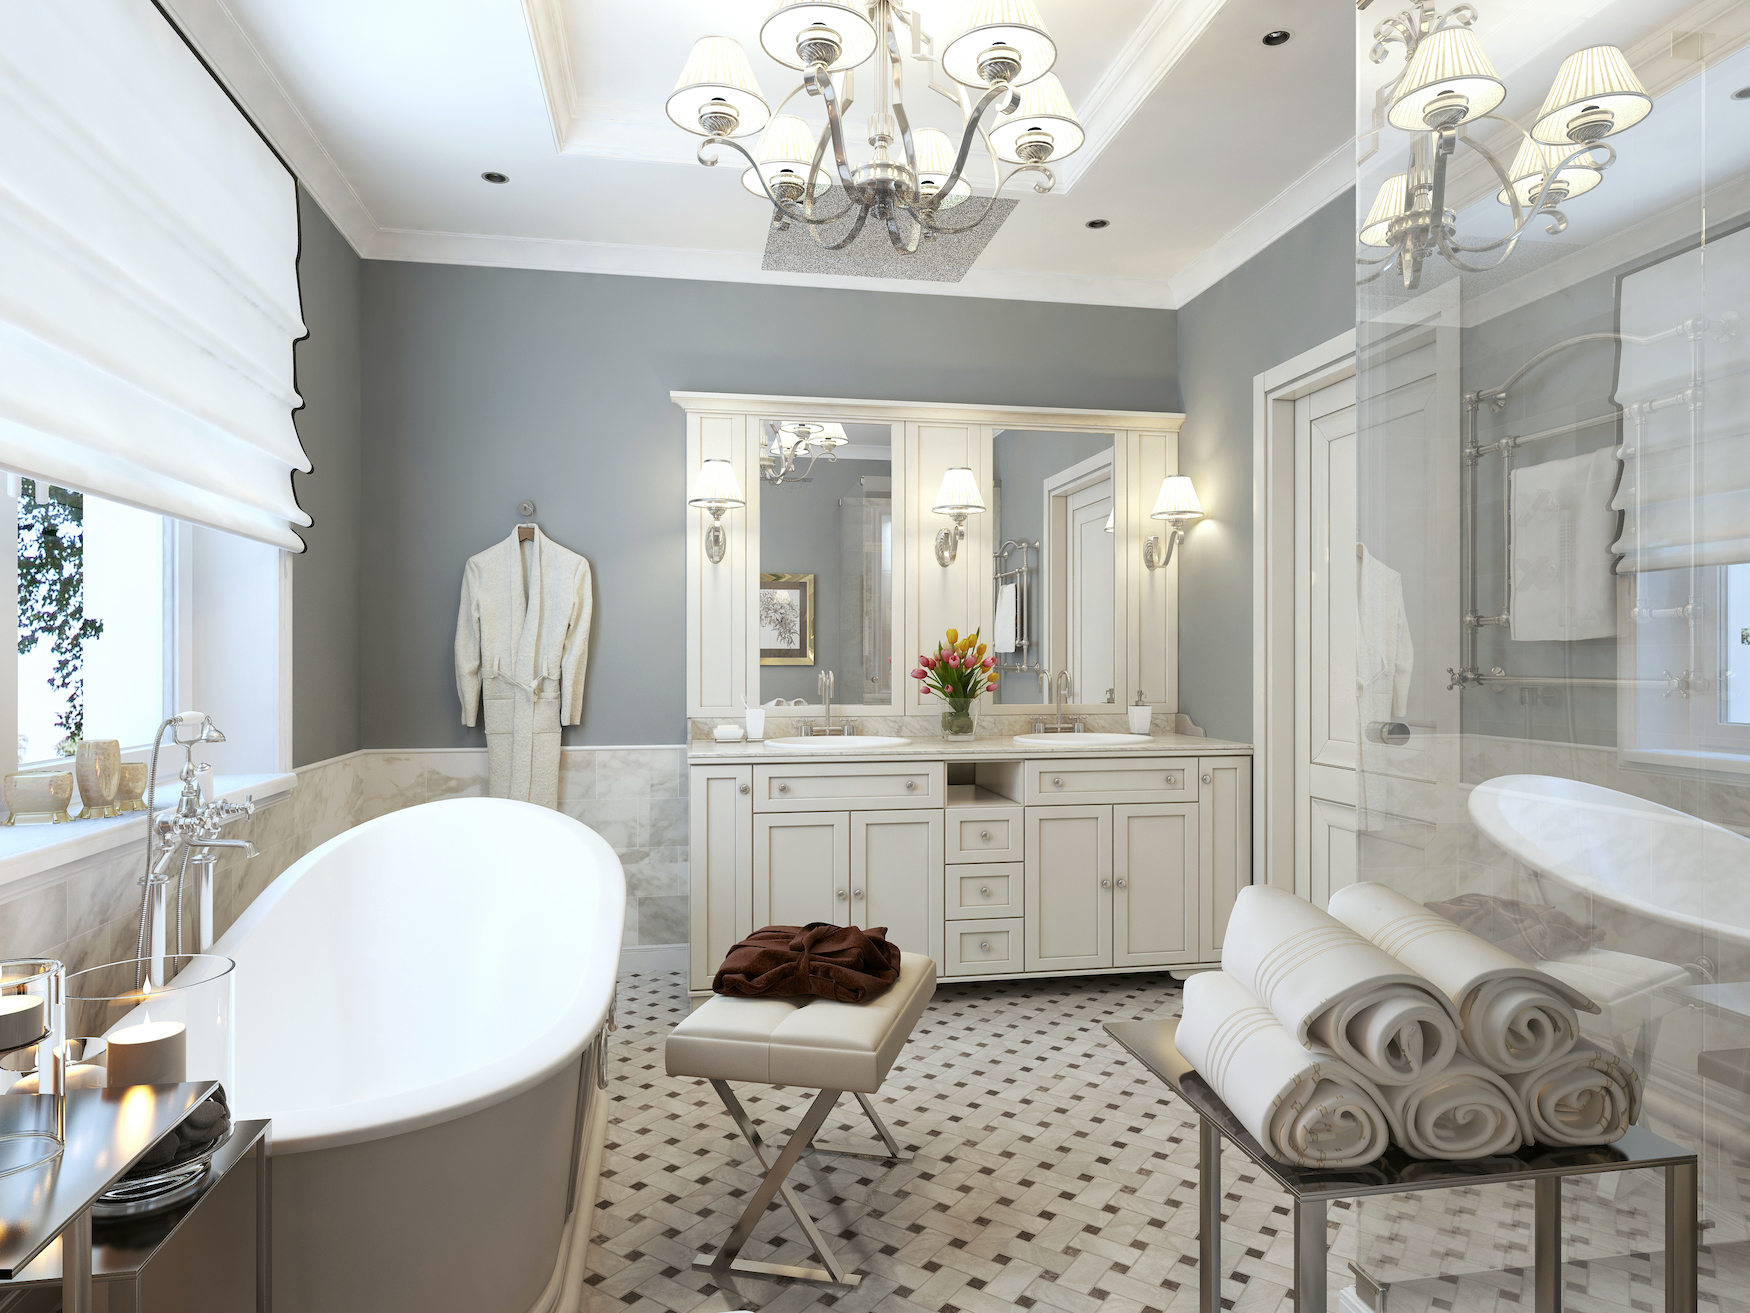 The Best Position for Bathroom Cabinets